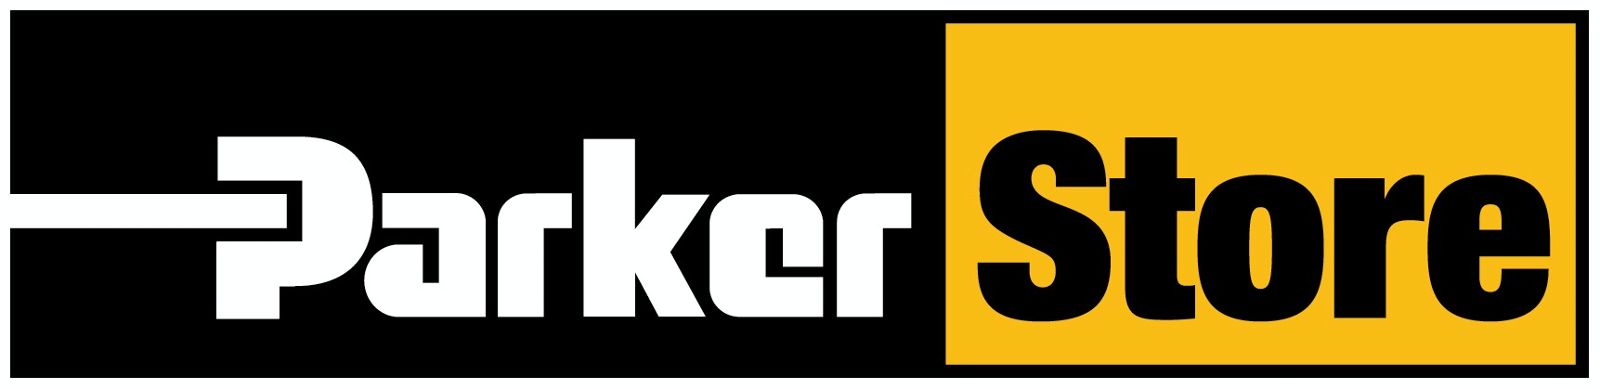 ParkerStore_Logo_01